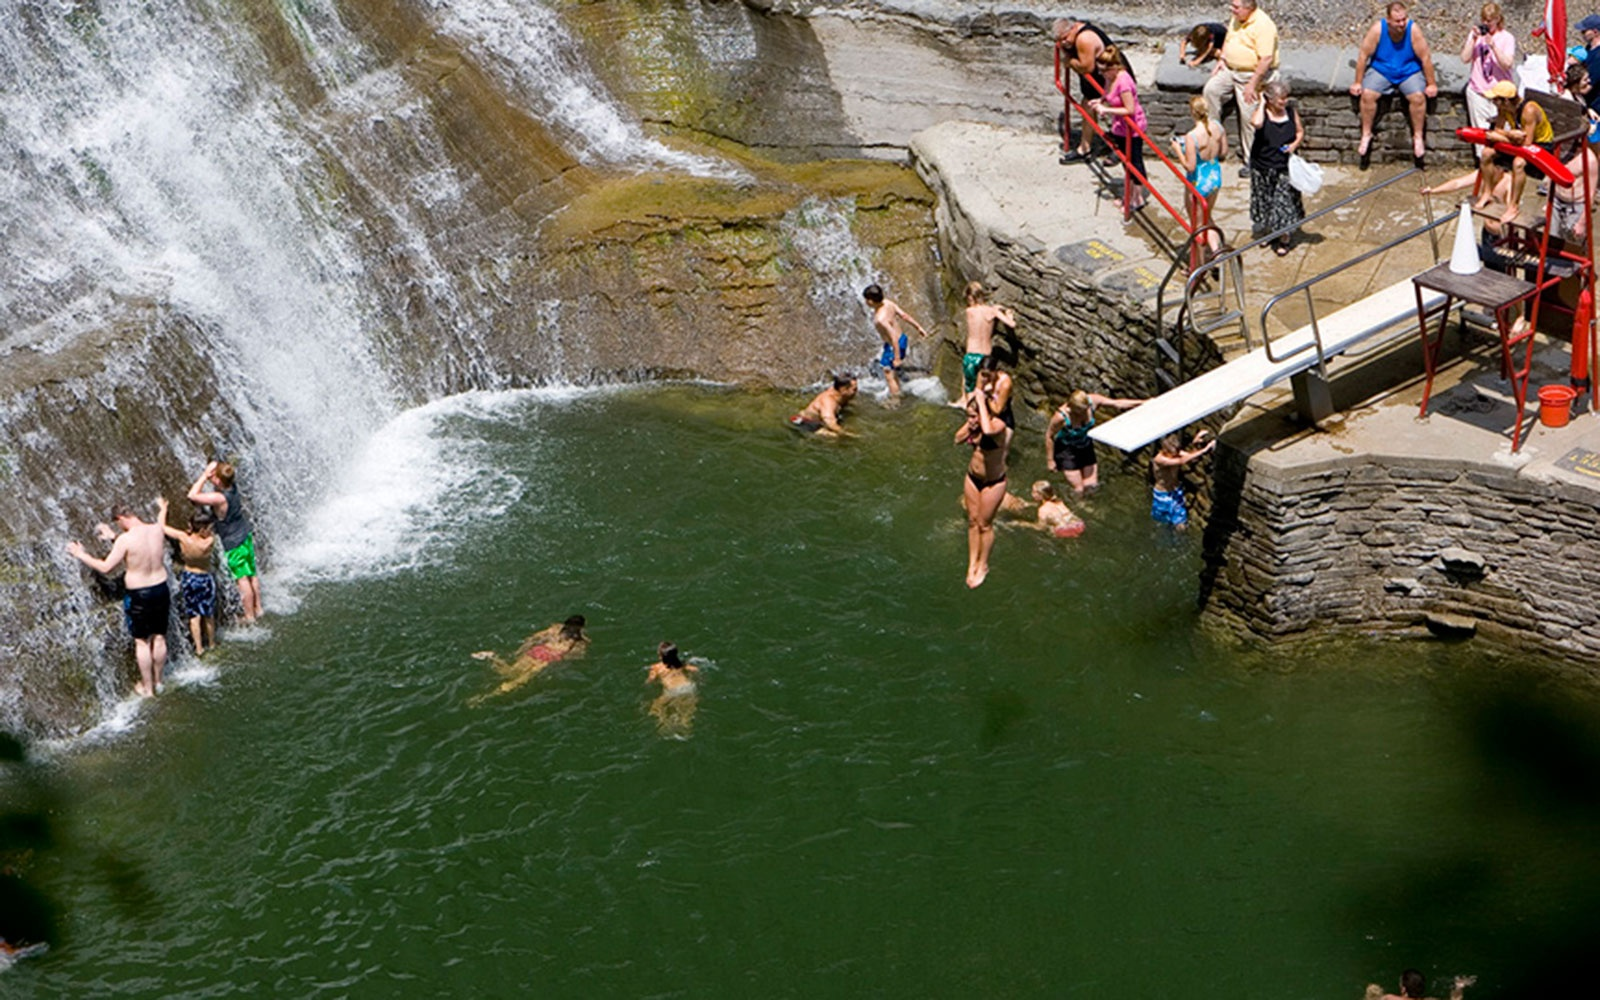 201406-w-americas-best-swimming-holes-enfield-falls